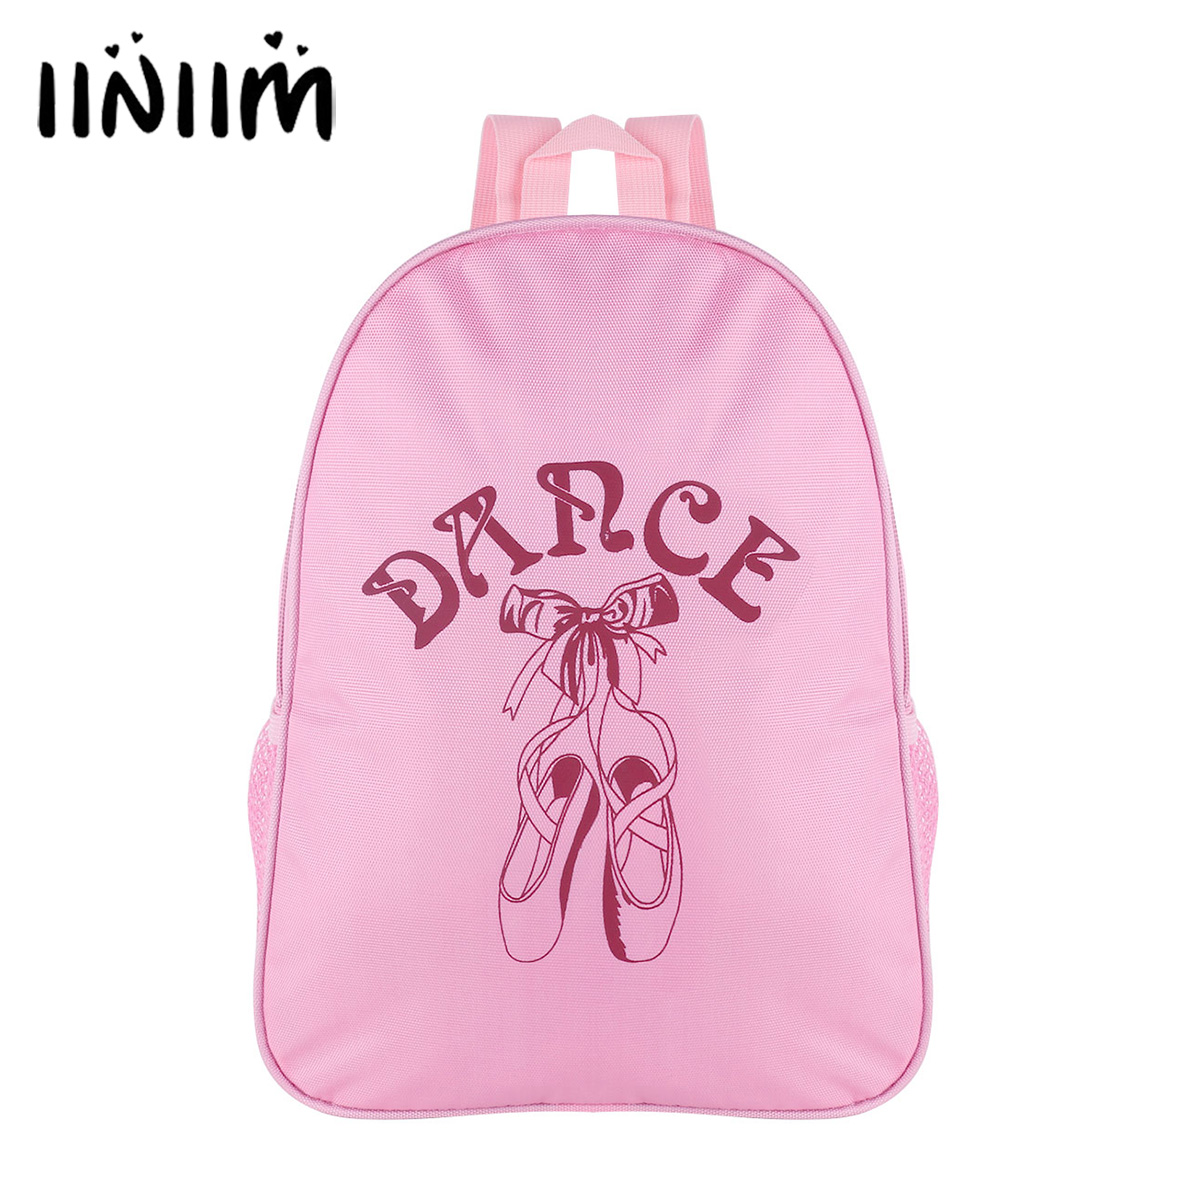 Kids Girls Lovely Ballet Backpack Fashion Ballet Dance Bag Students School Backpack for Dancing Toe Shoes Print Shoulder Bag